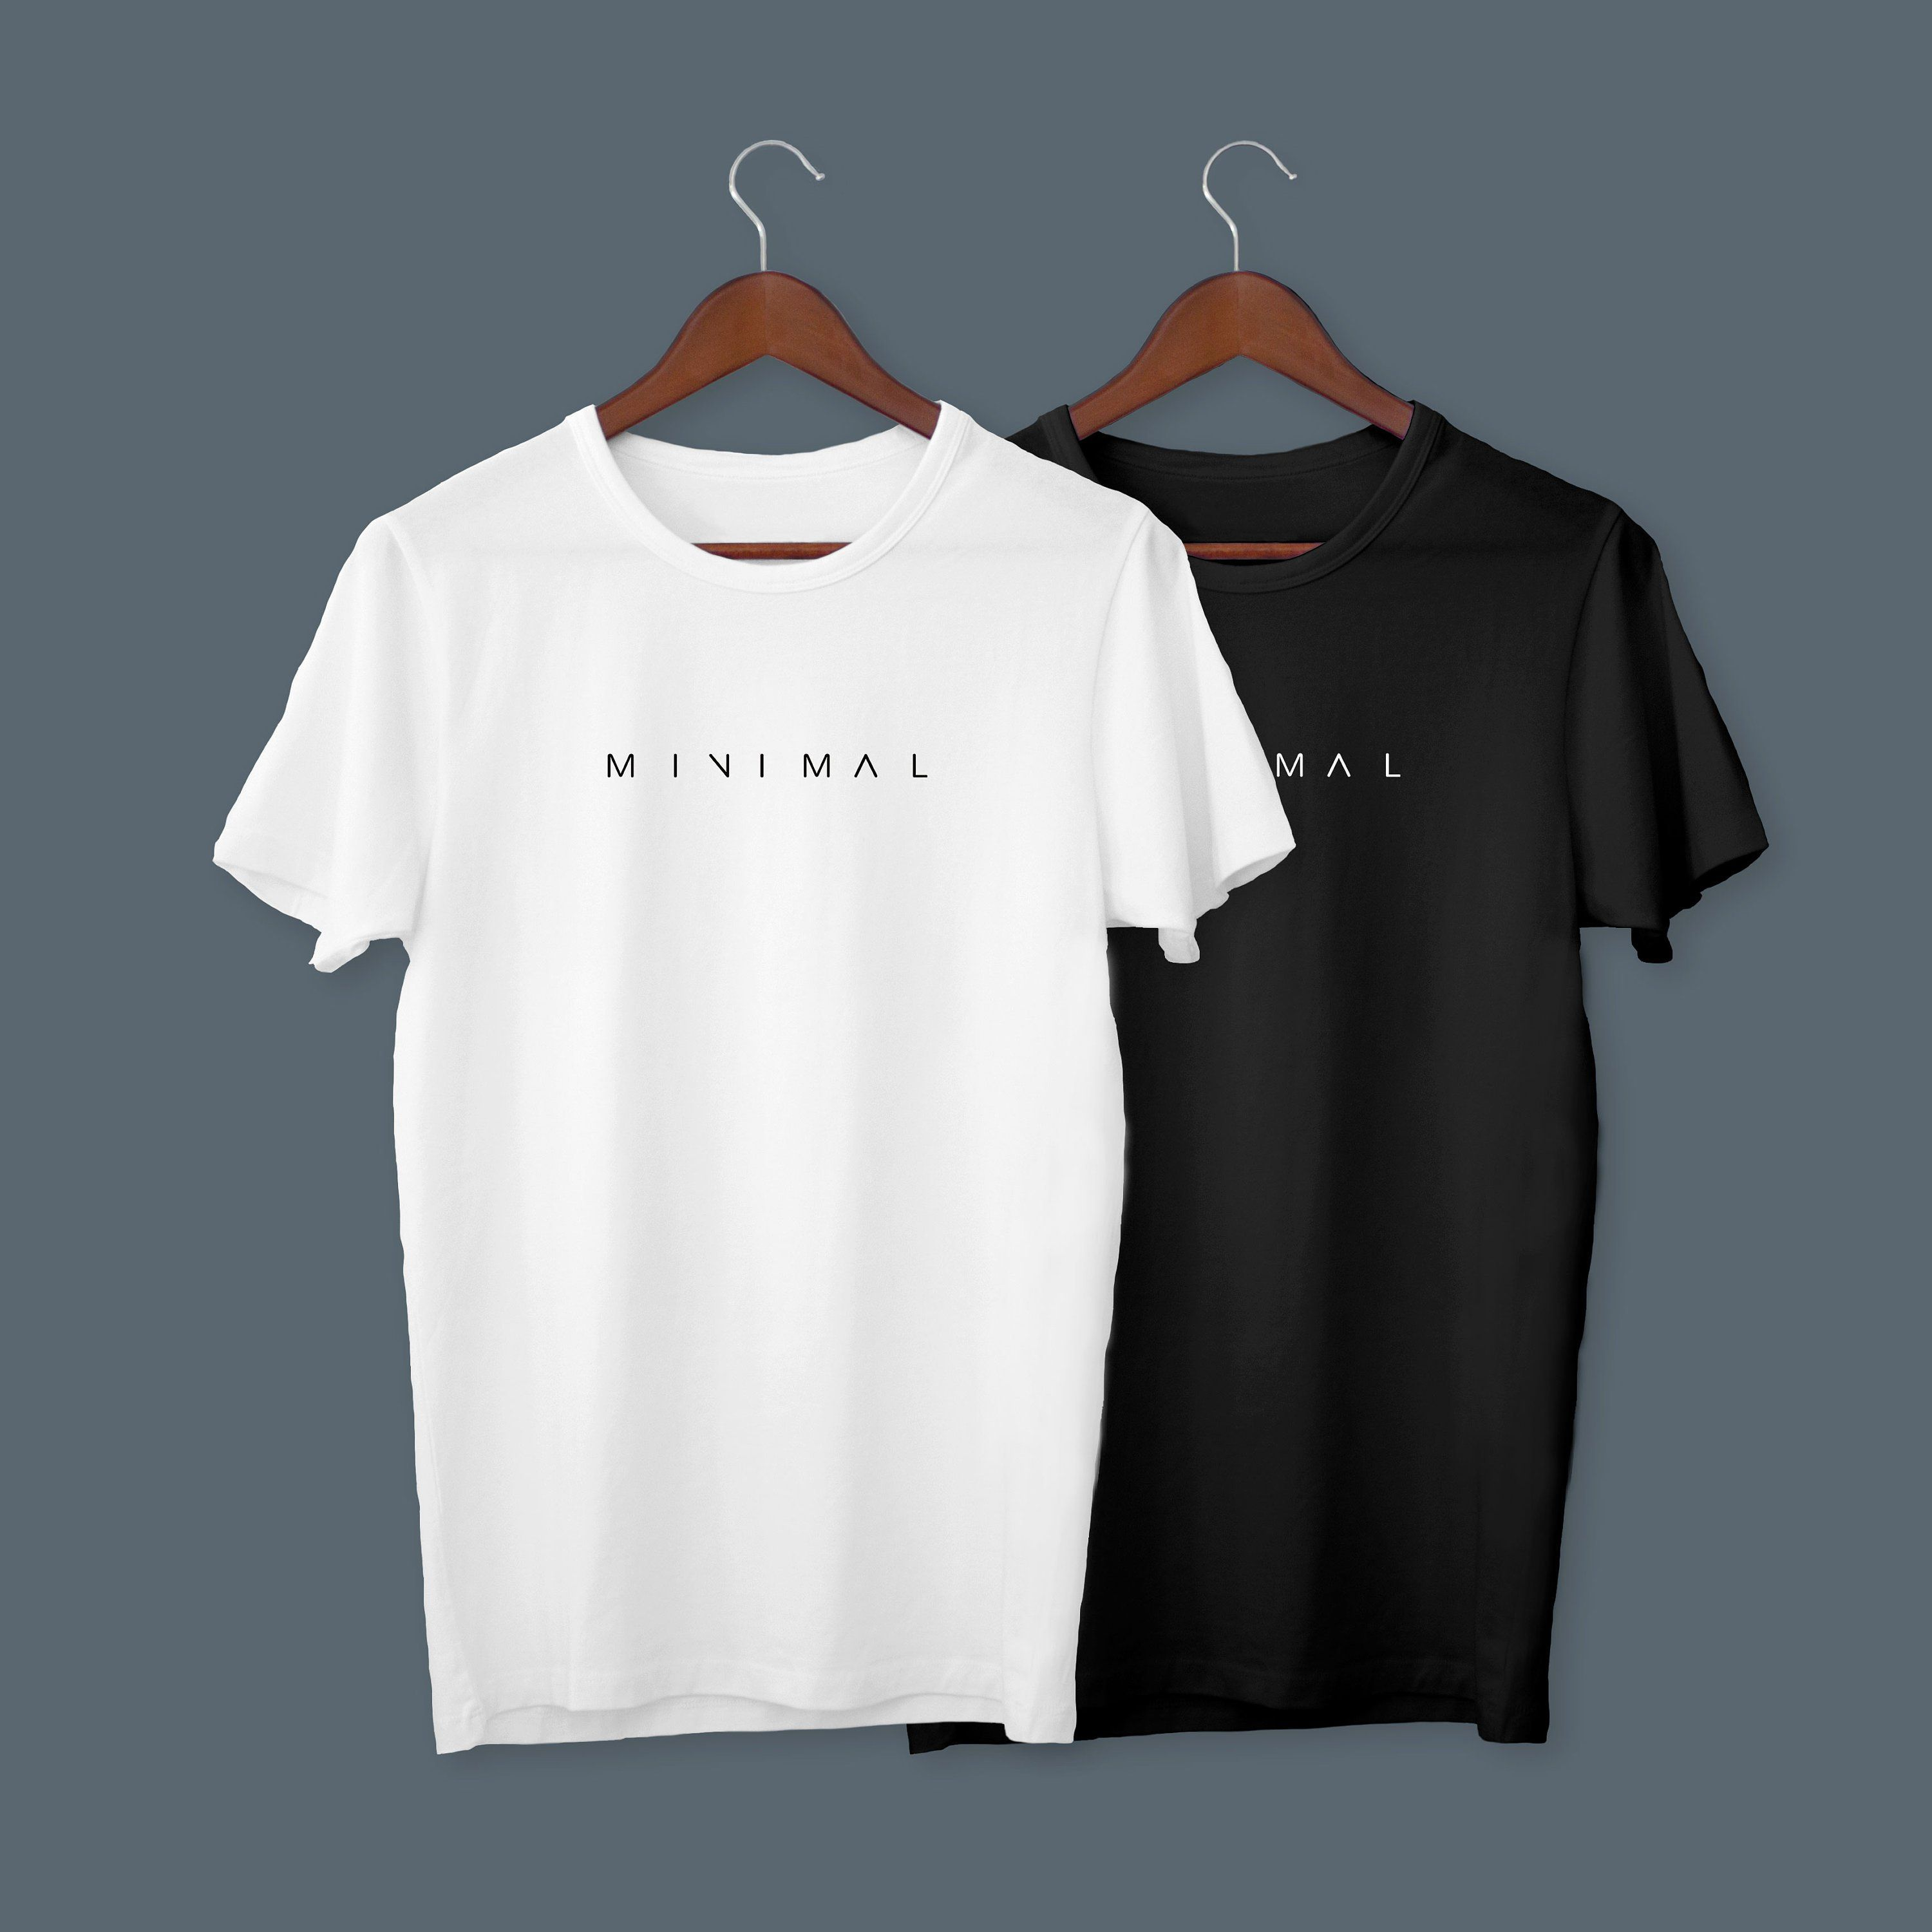 Minimalistic Tee with stylish Typography for simple people ...